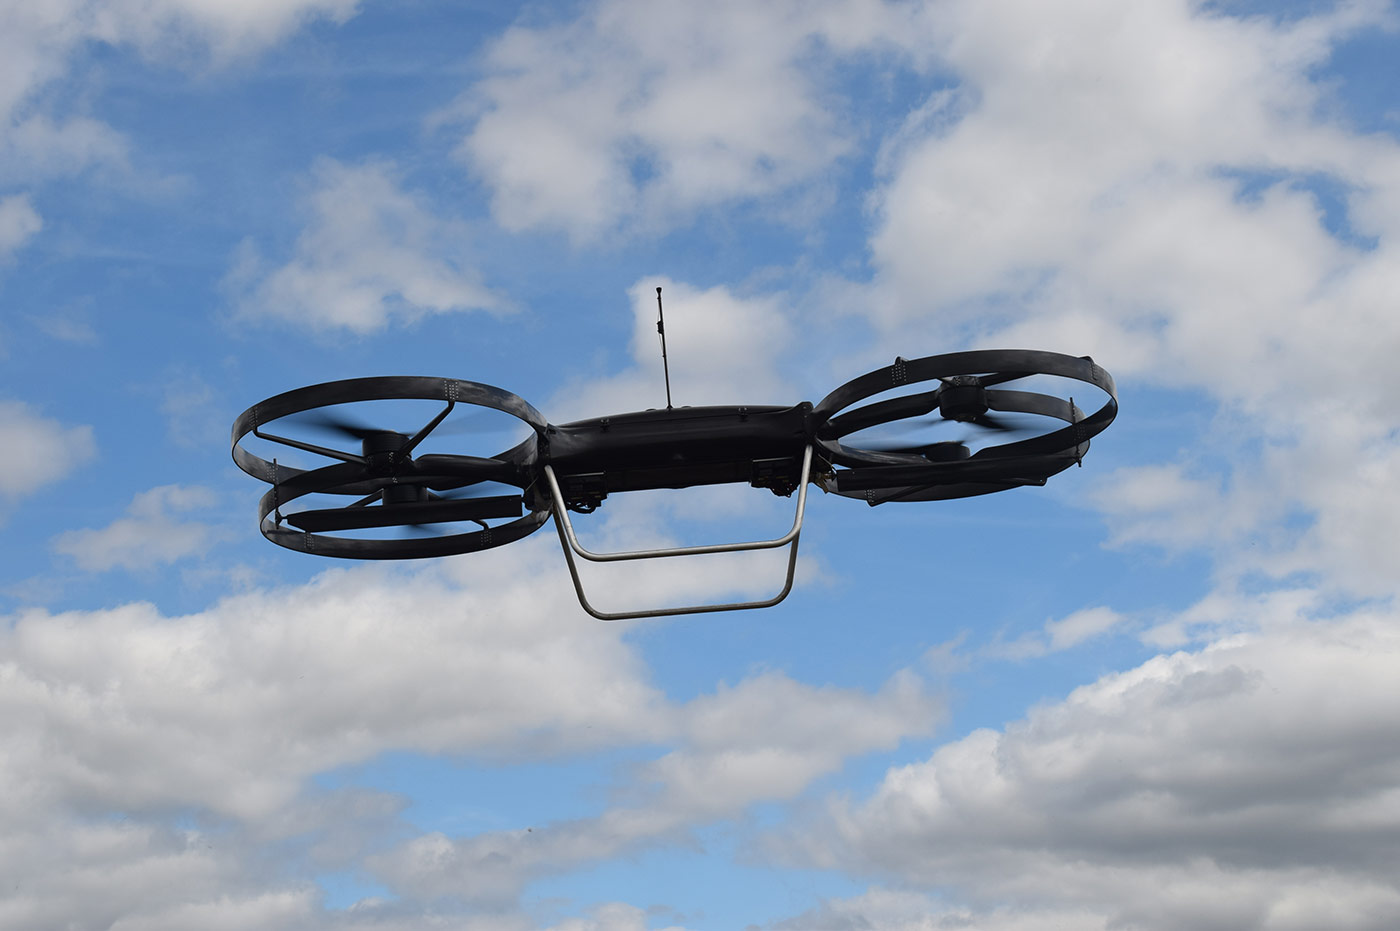 Malloy Hoverbike Worlds First Flying Motorcycle Online Buy Wholesale Wiring Harness From China Drone 3